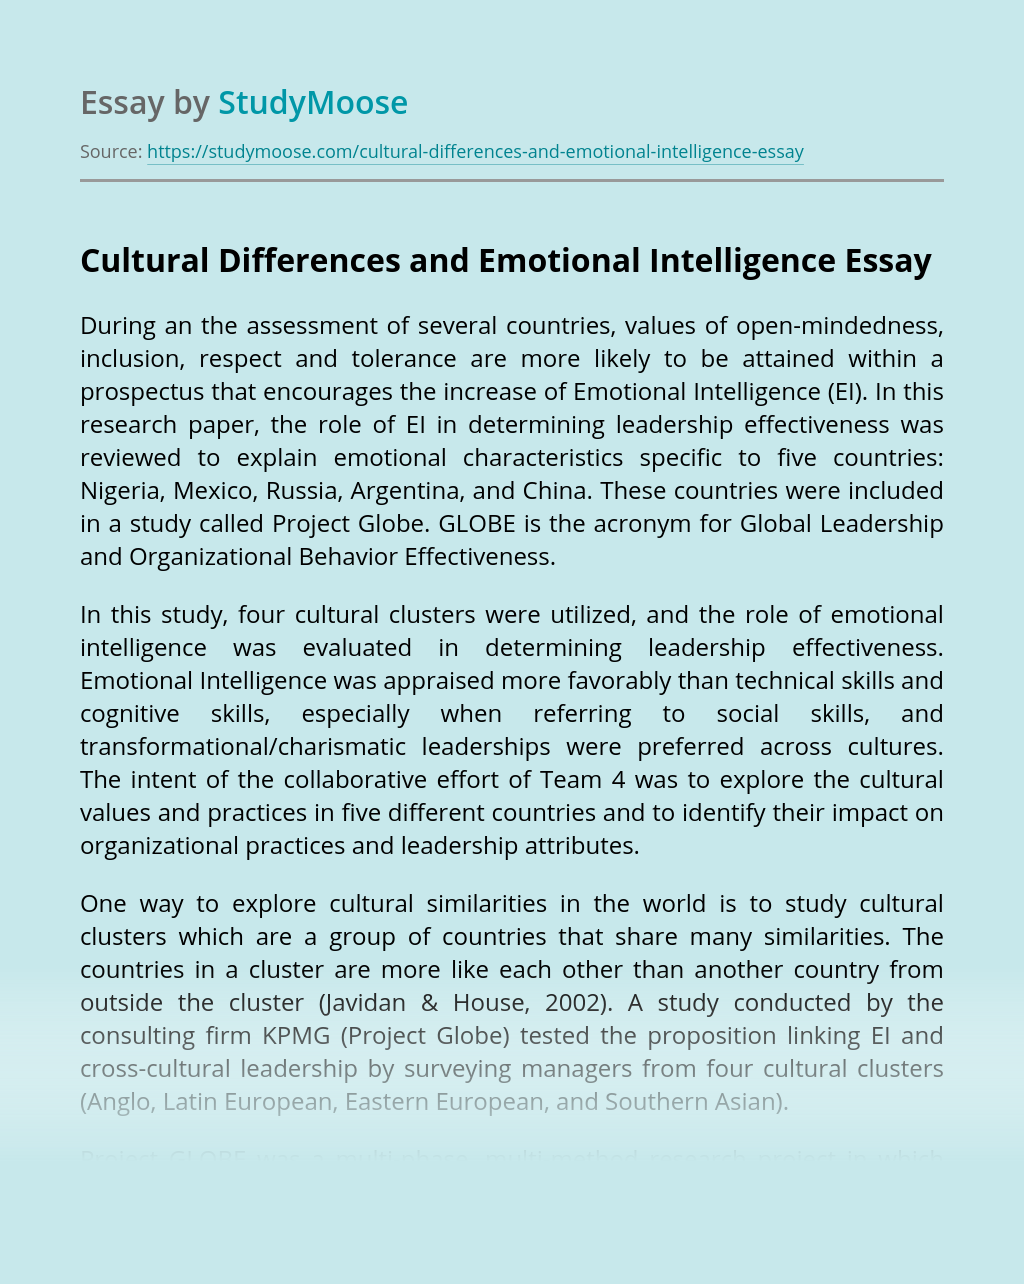 Cultural Differences and Emotional Intelligence